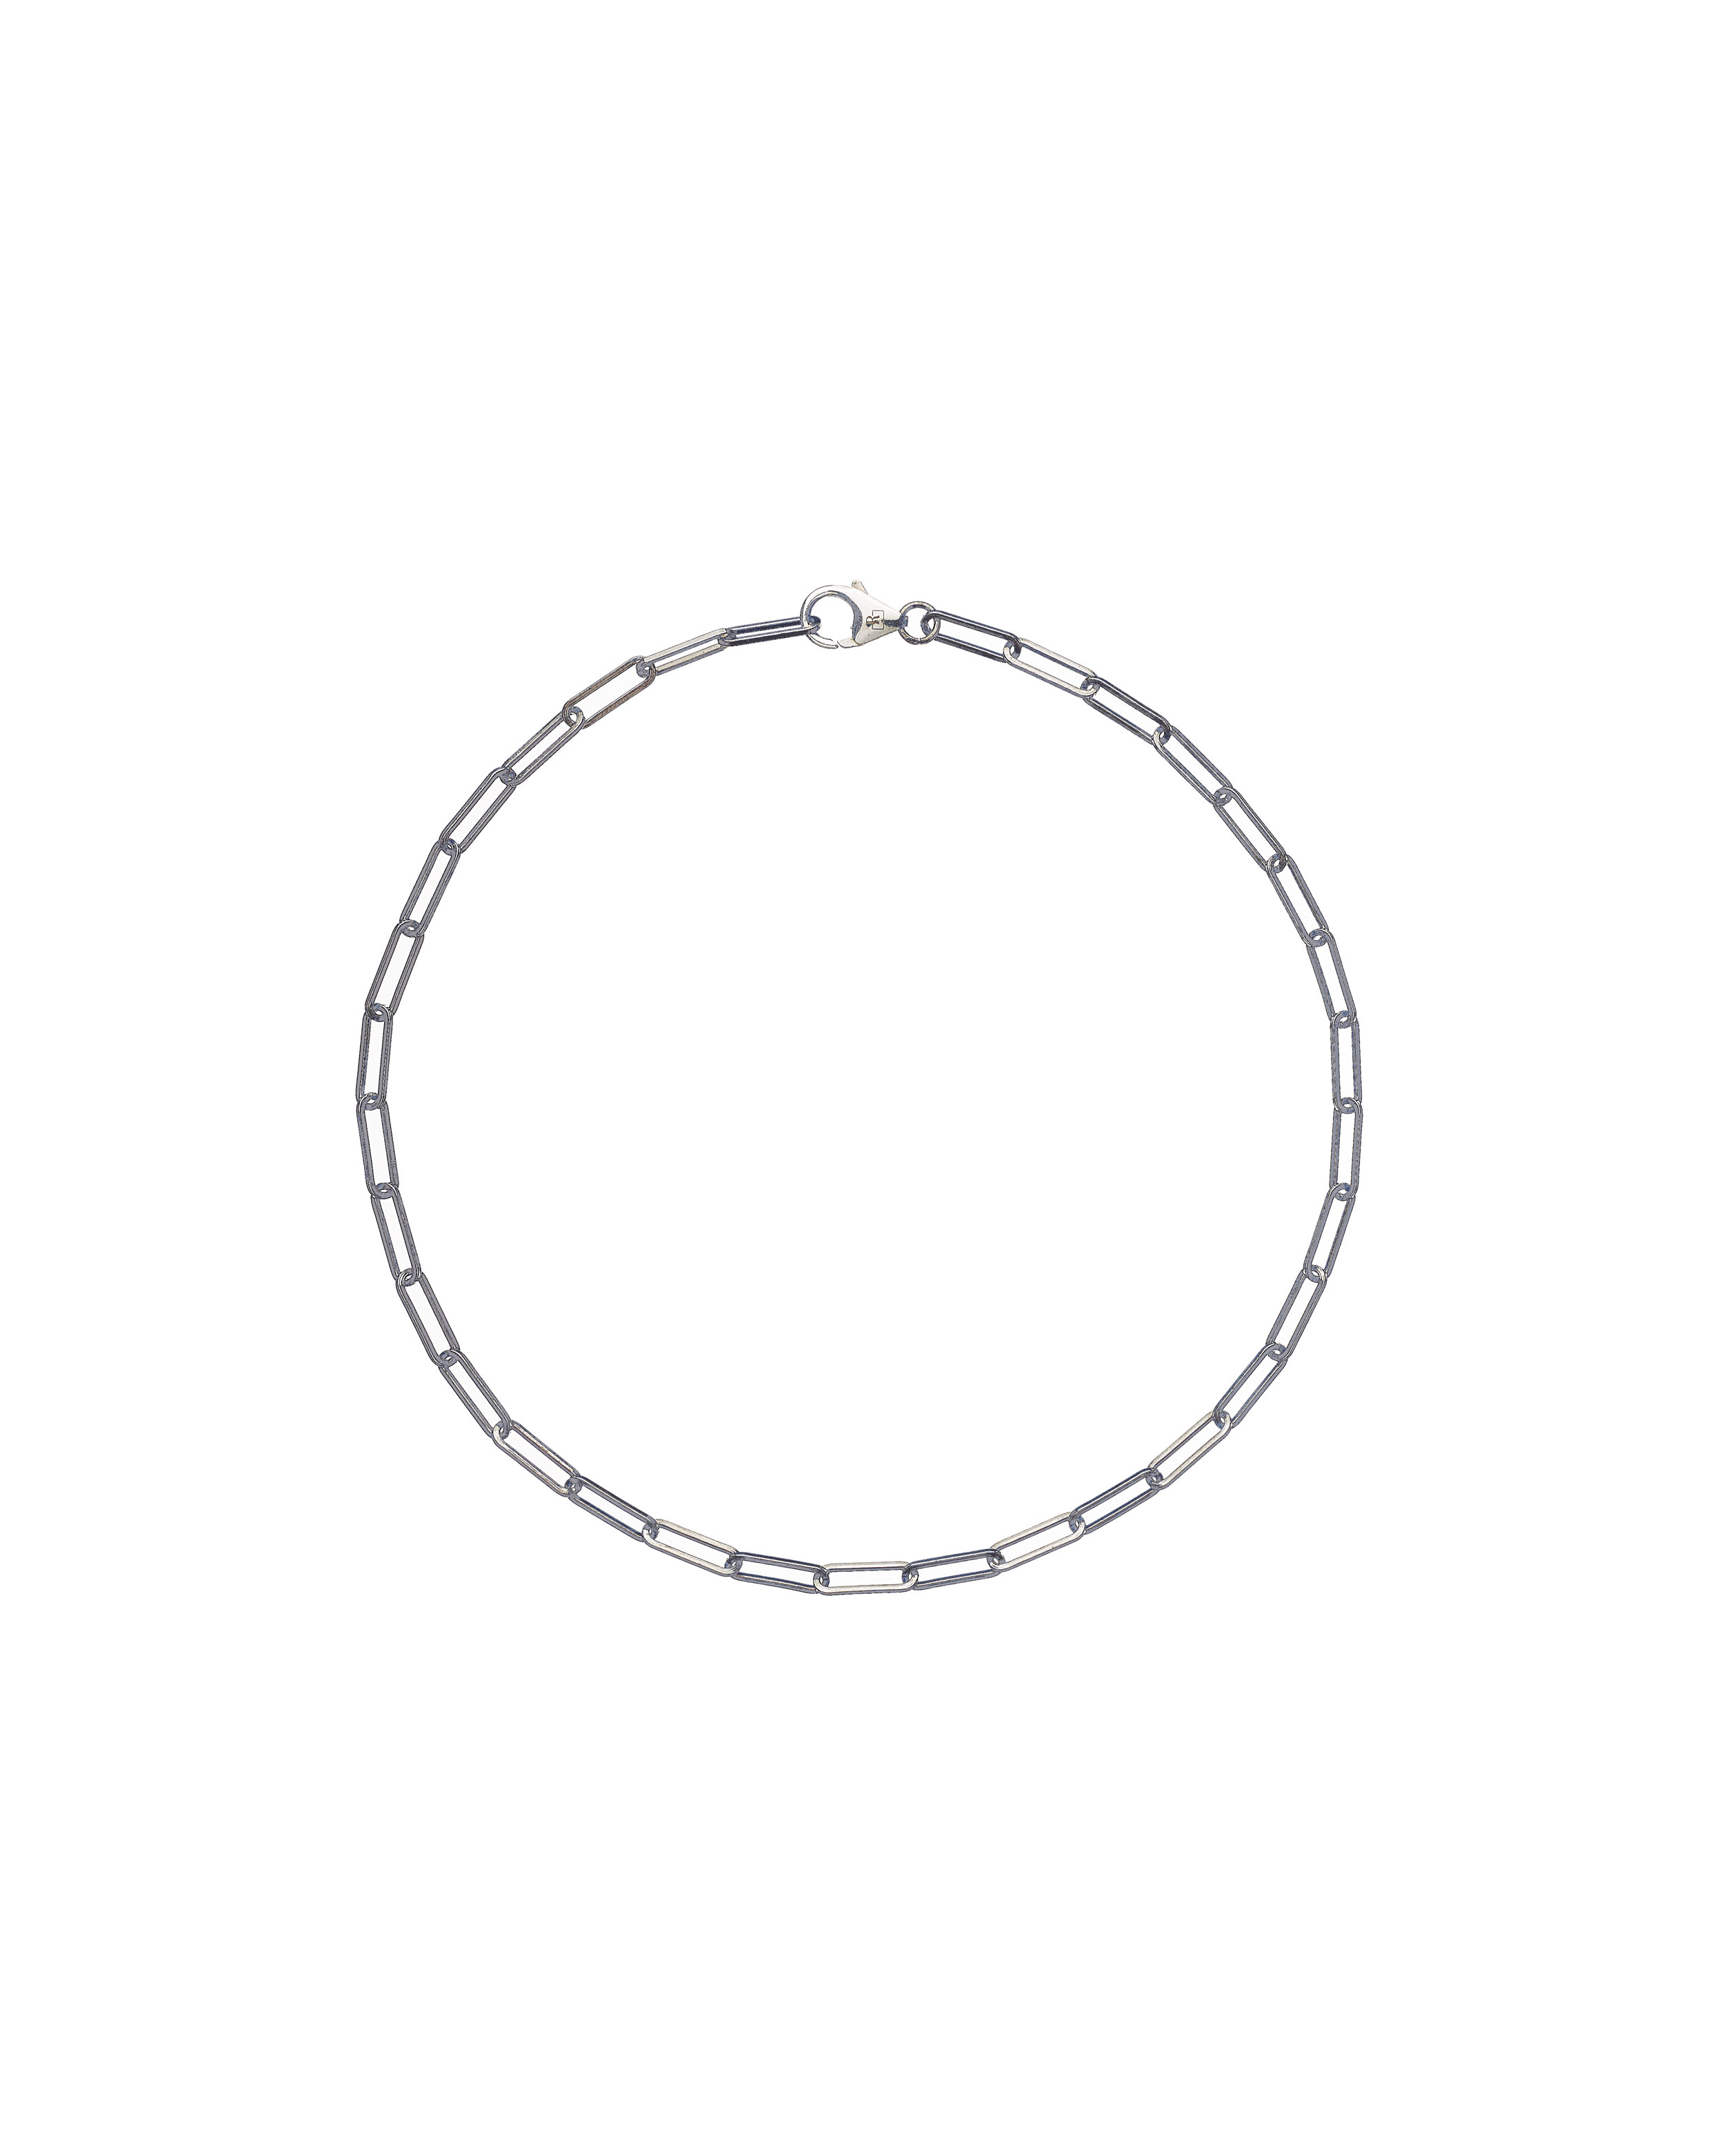 solid 925 Sterling silver chain luxury necklace